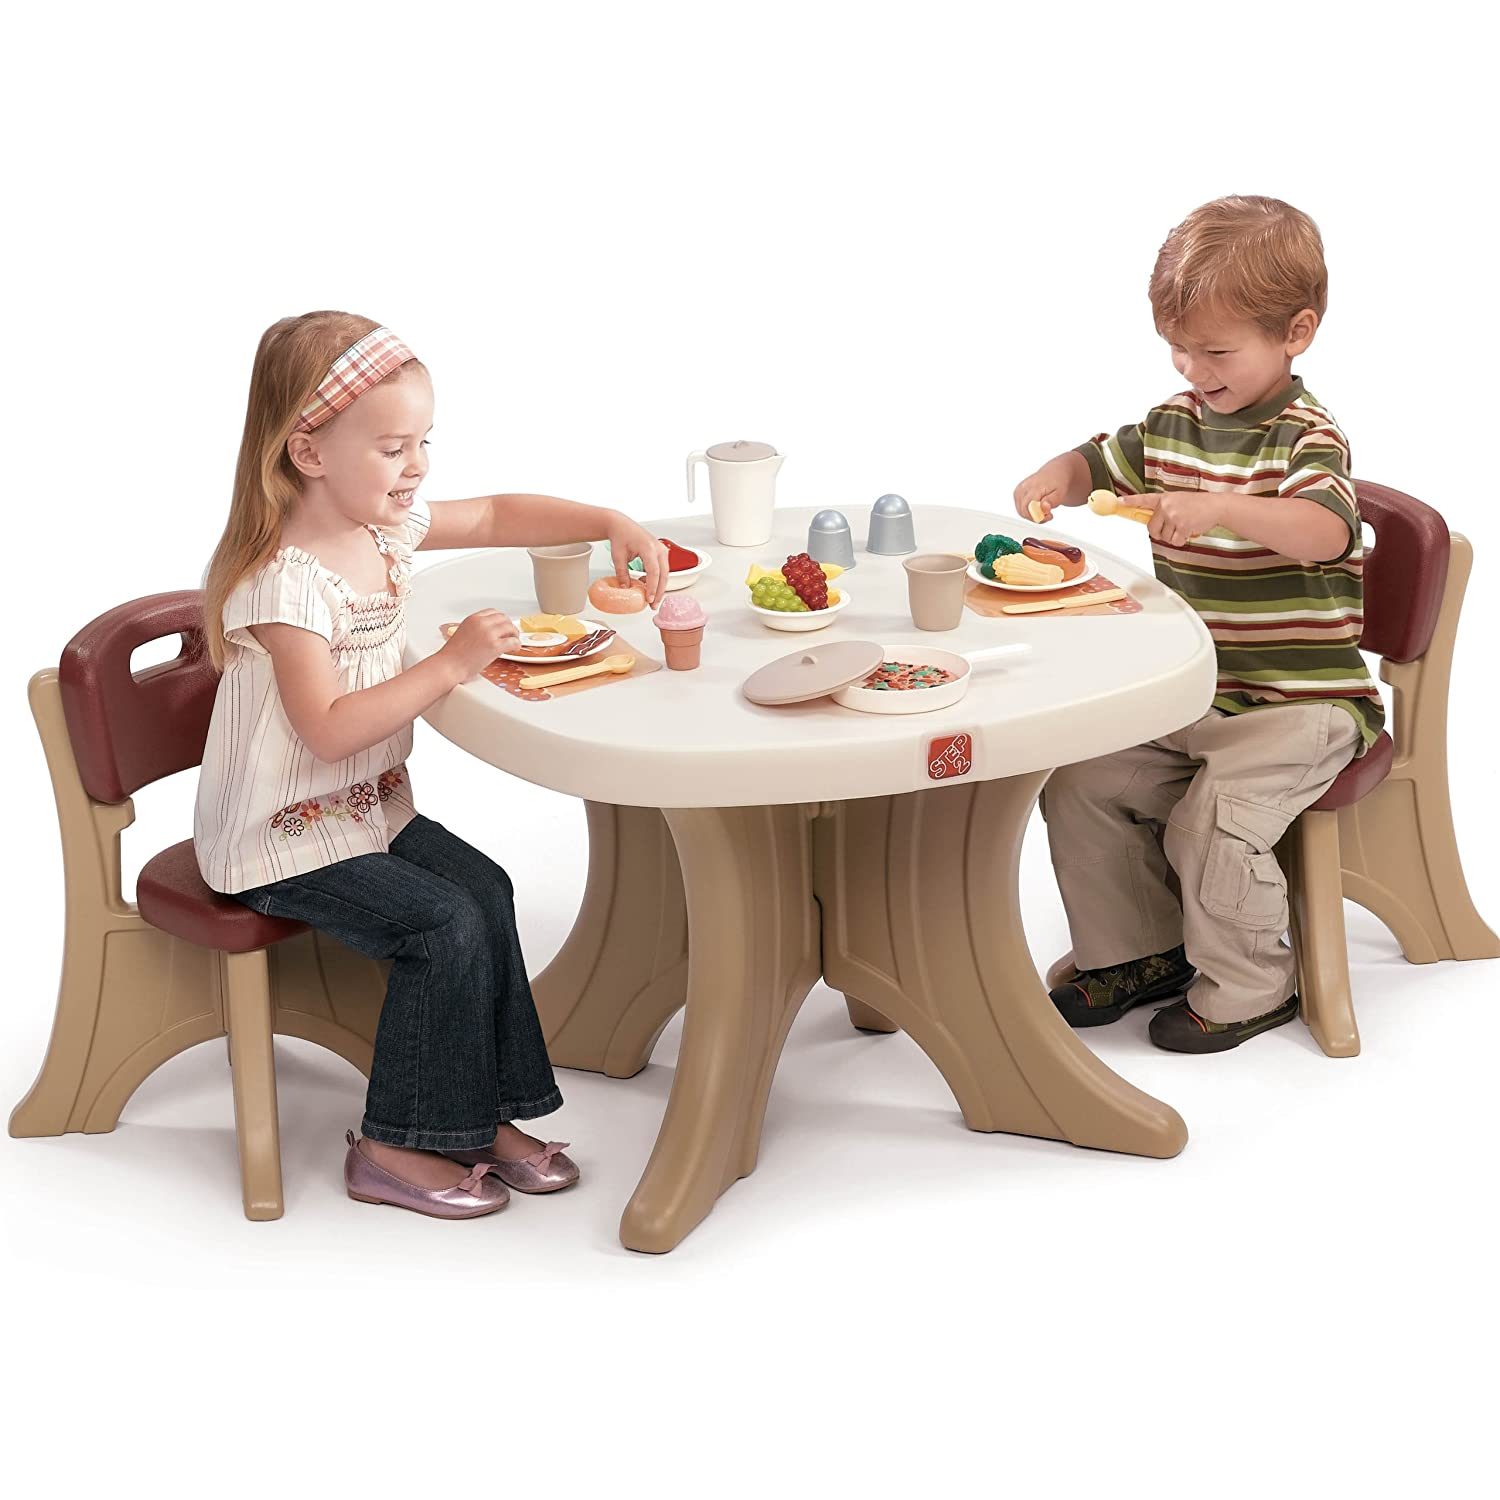 Step2 New Traditions Table & Chairs Set - Click to read reviews or